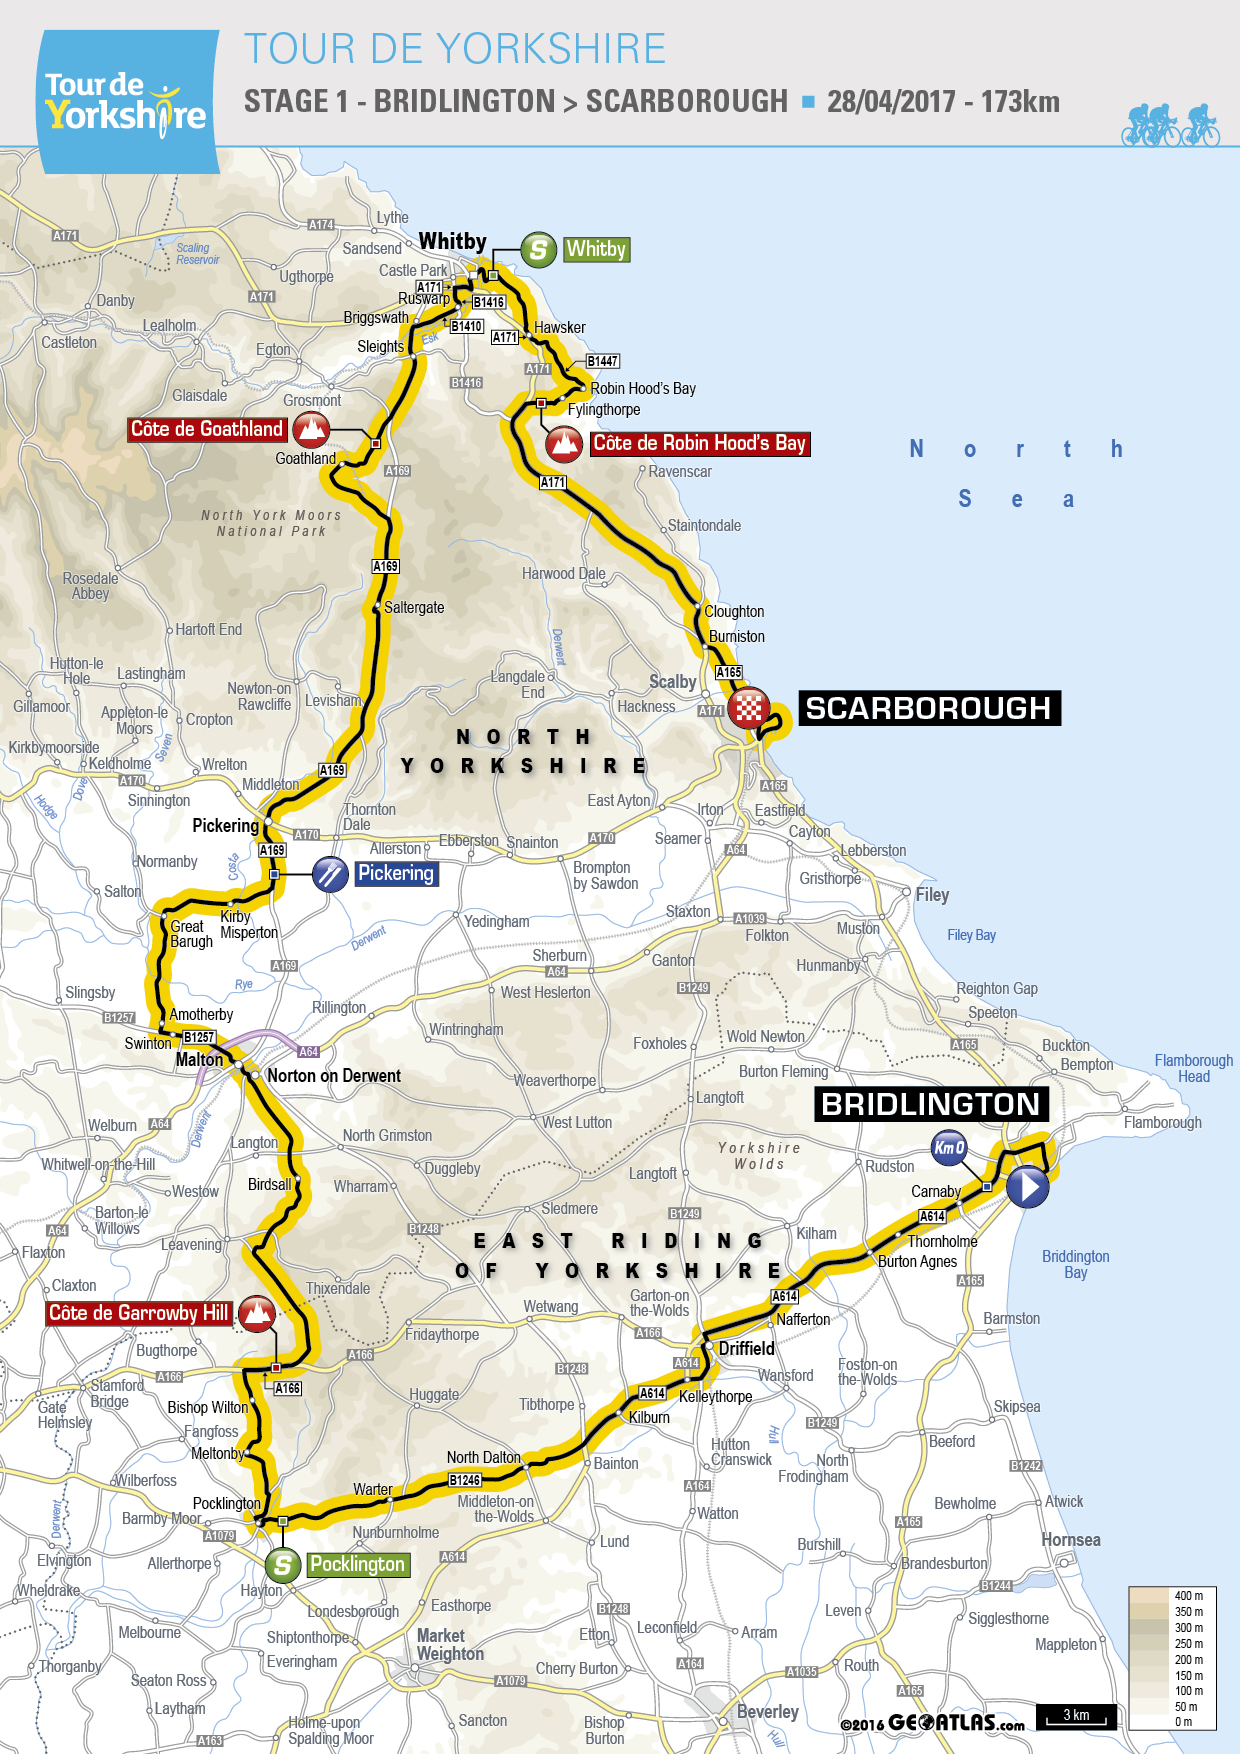 tdy17_map-stage1